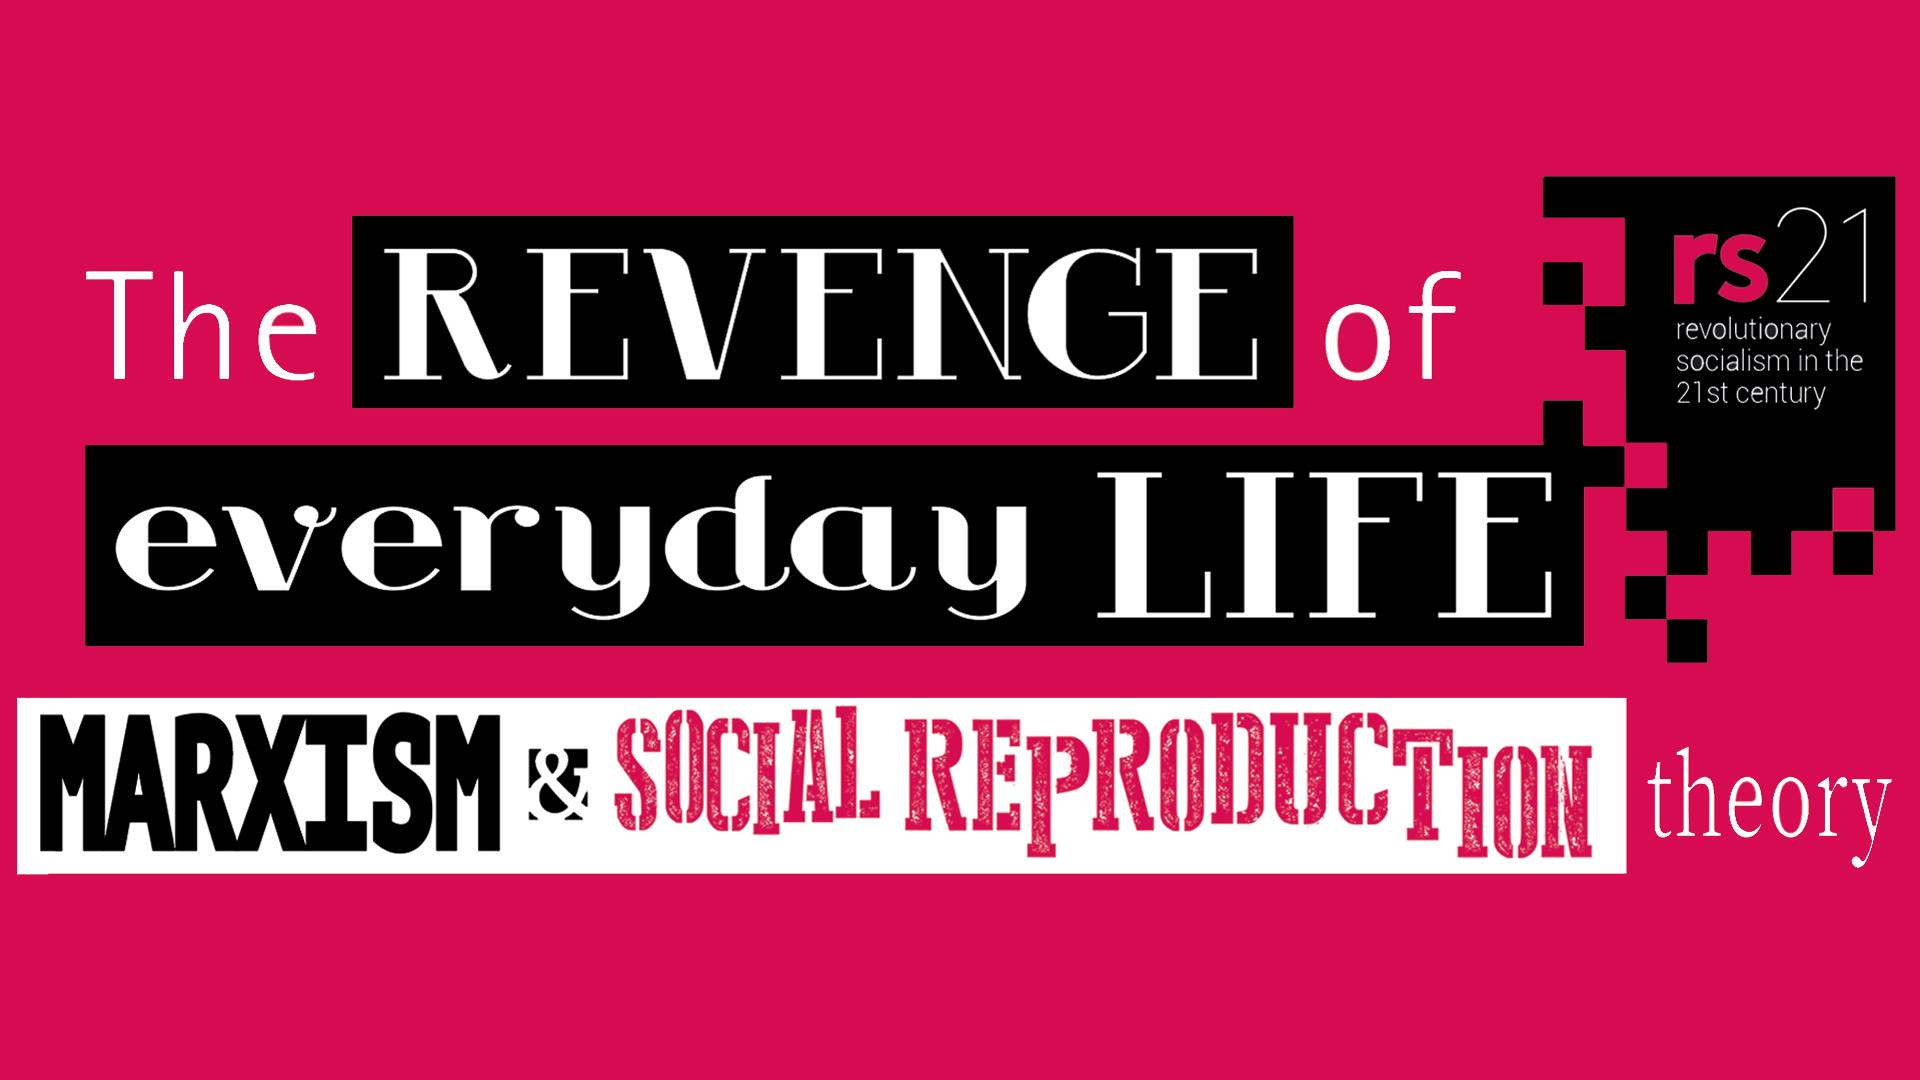 The revenge of everyday life: Marxism and social reproduction theory